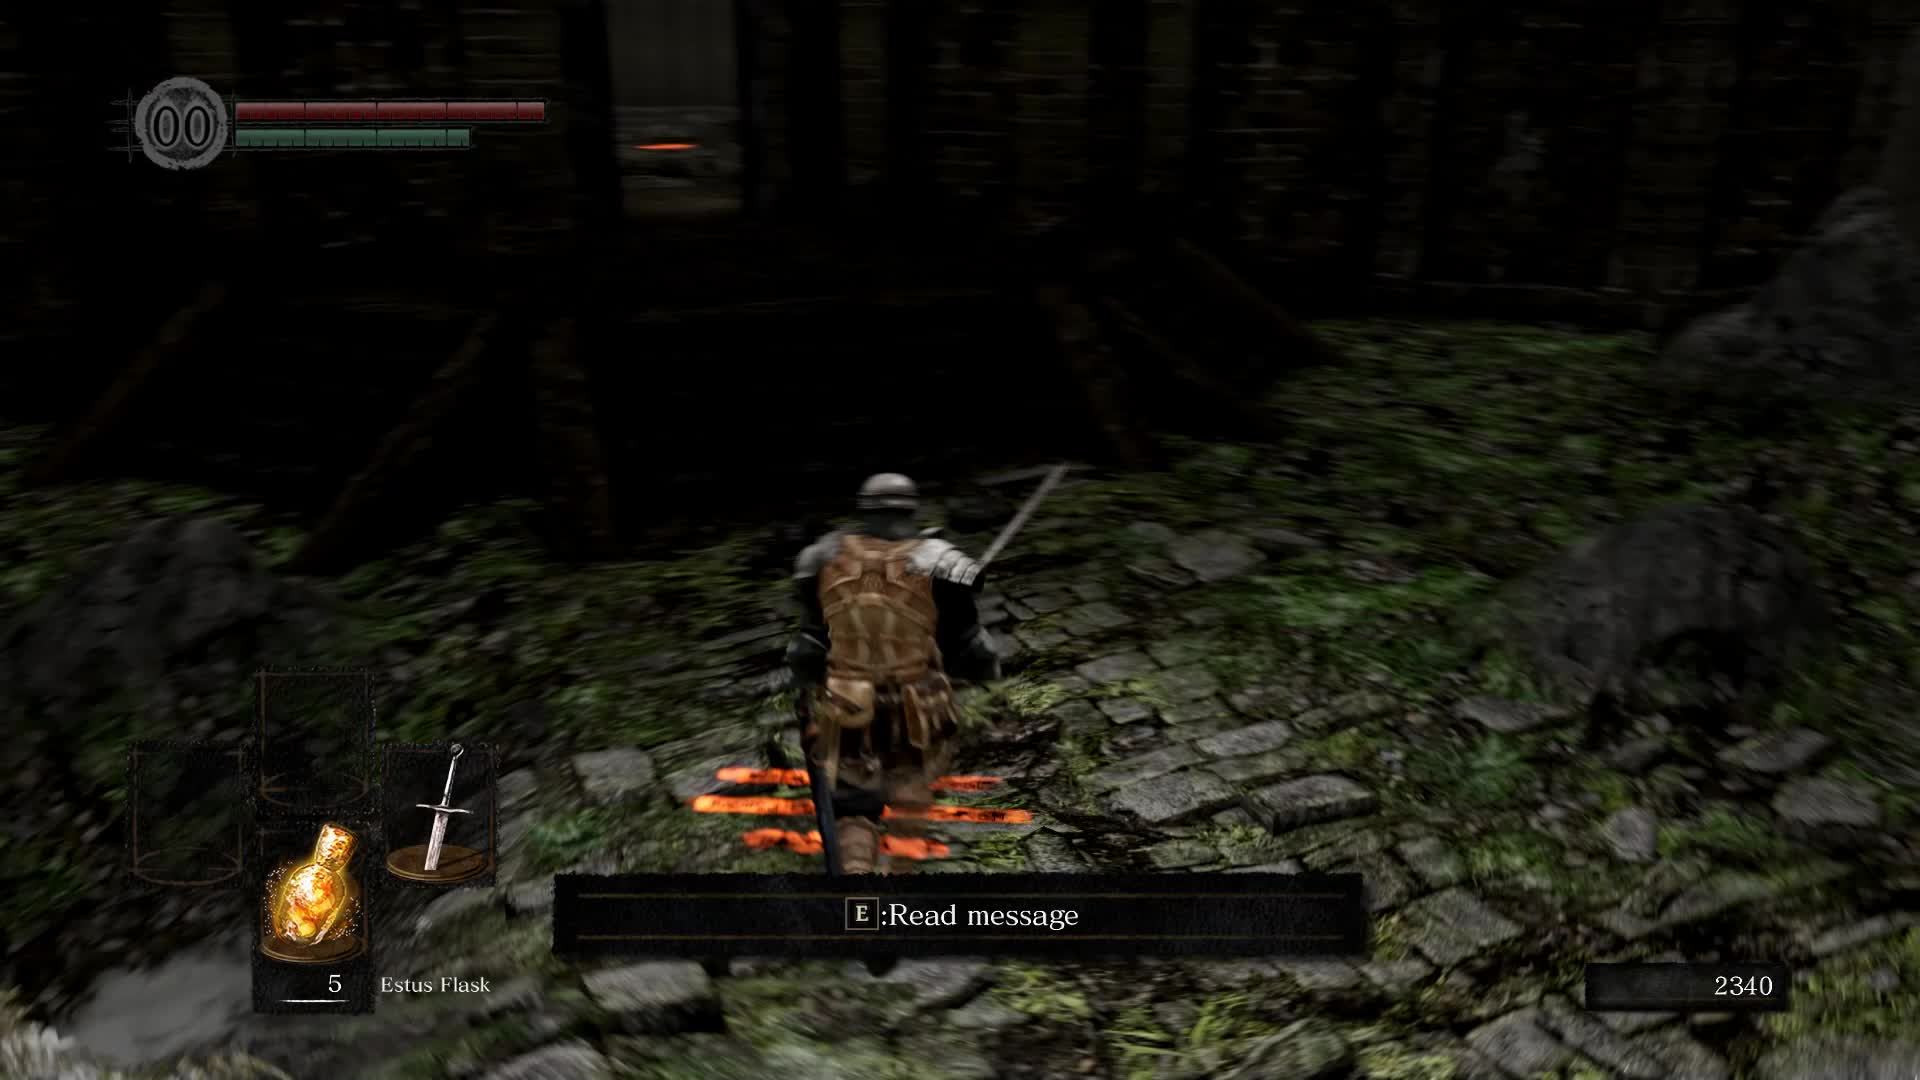 Dark, Lol, Memes, Remastered, Souls, DARK SOULS LIED TO ME. GIFs